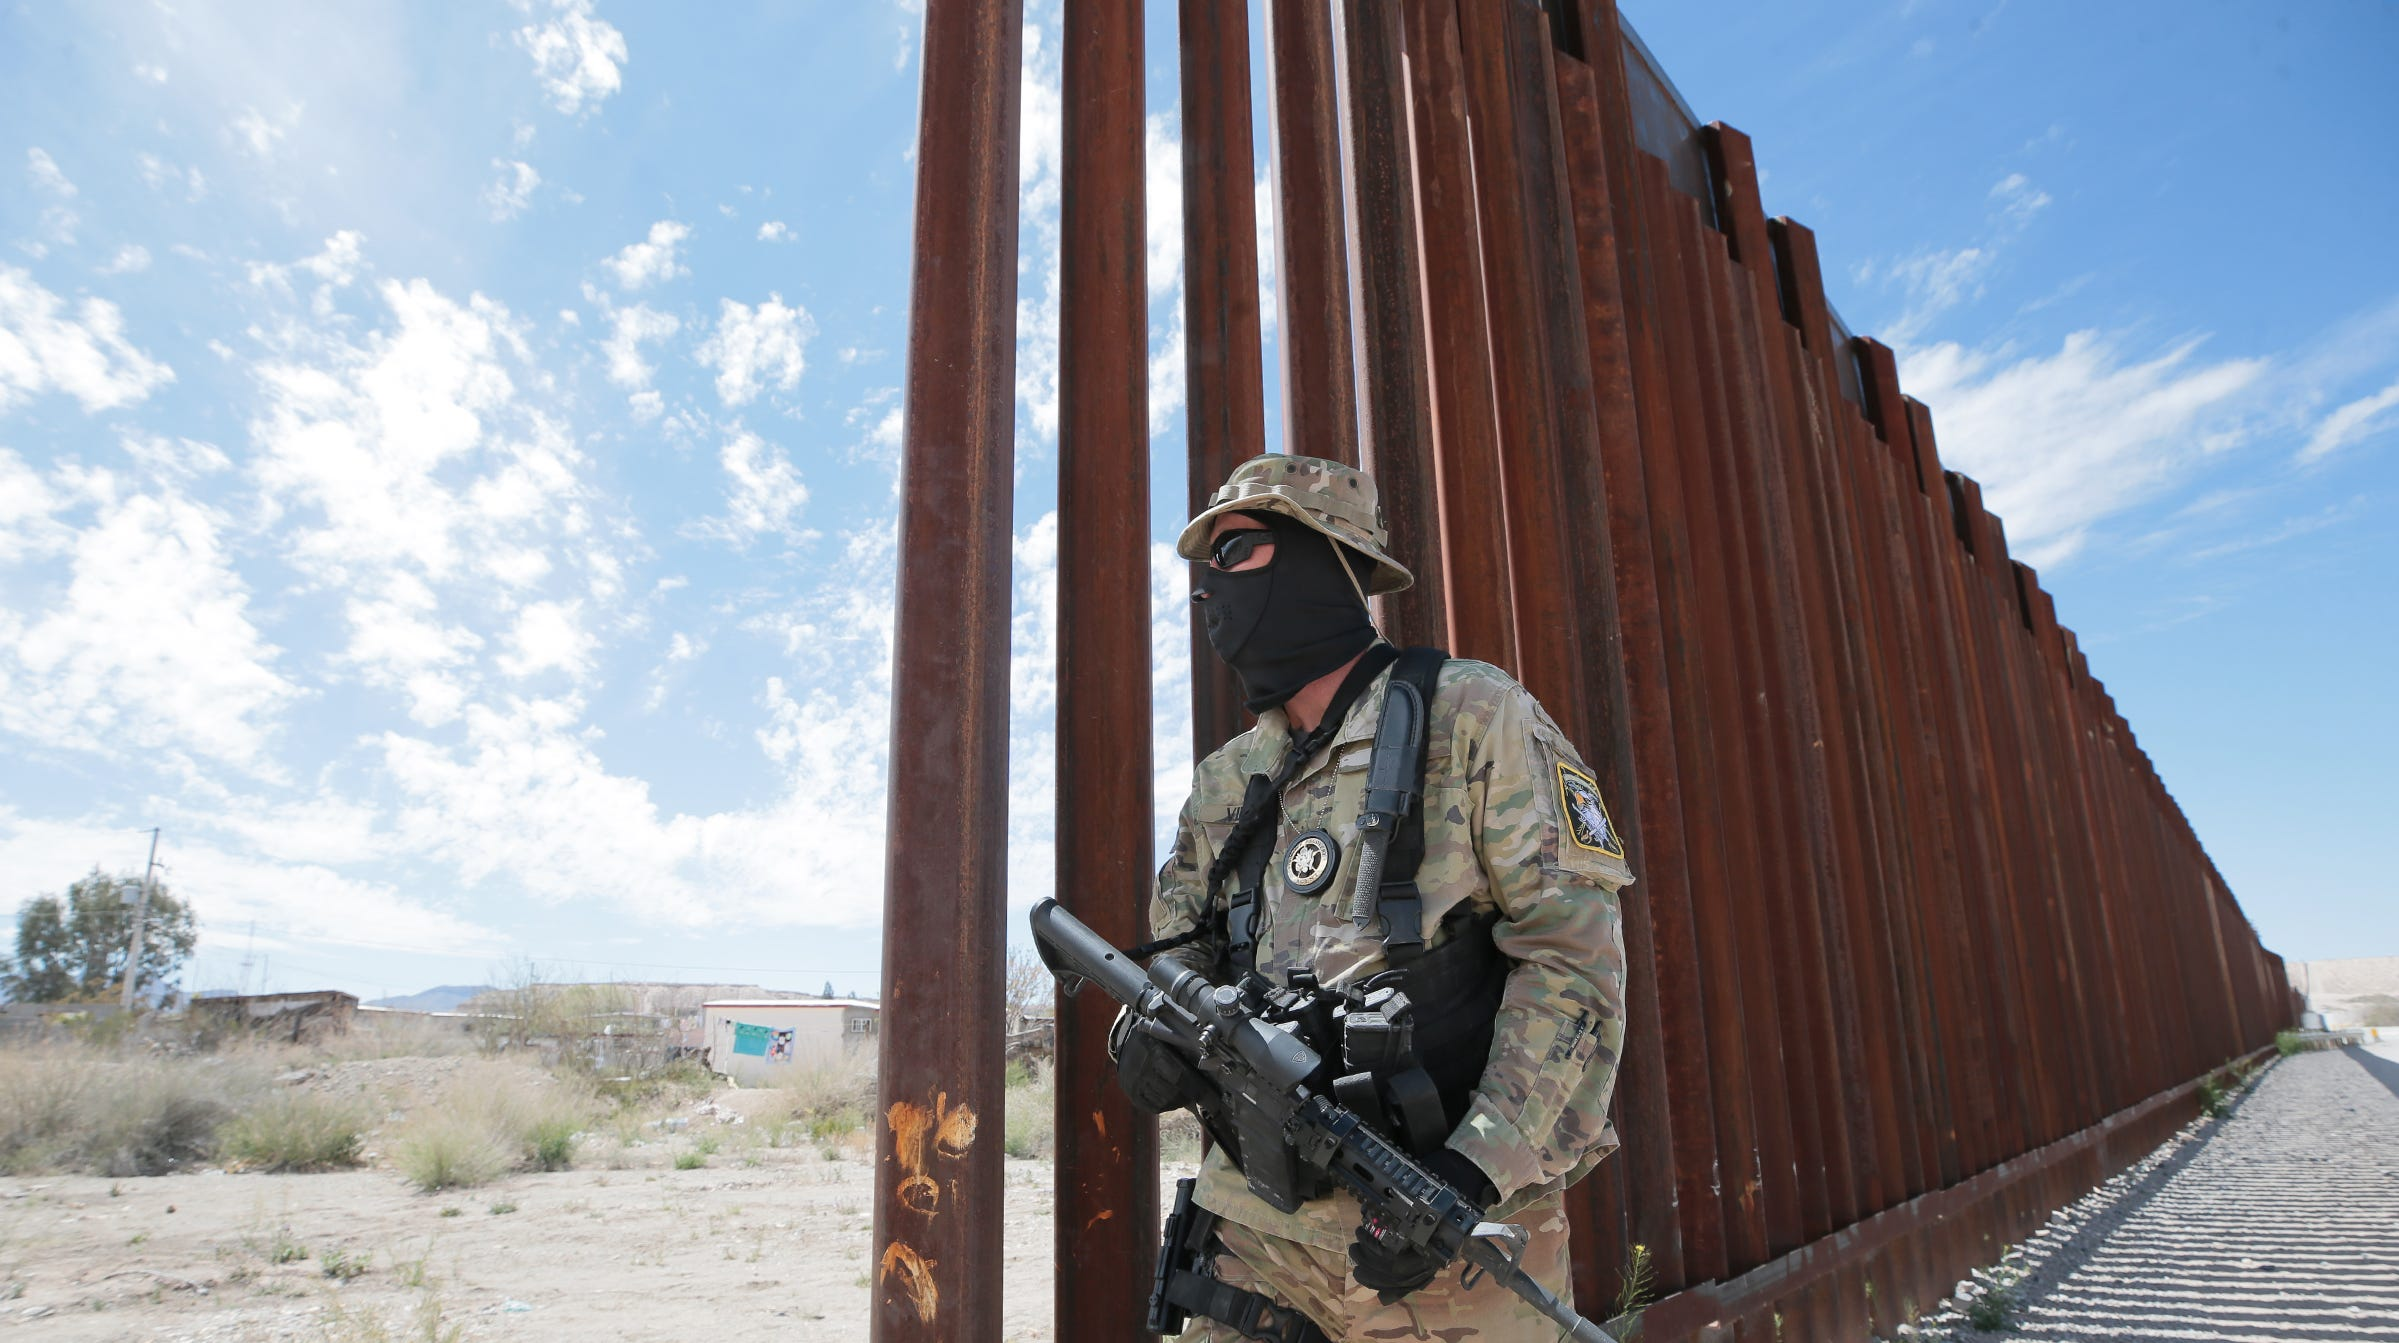 """Viper,"" A member of the United Constitutional Patriots-New Mexico Border Ops, stands where the bollard fence in Anapra, New Mexico ends. The group has been camped out on the border for a few months helping Border Patrol watch this section of border."